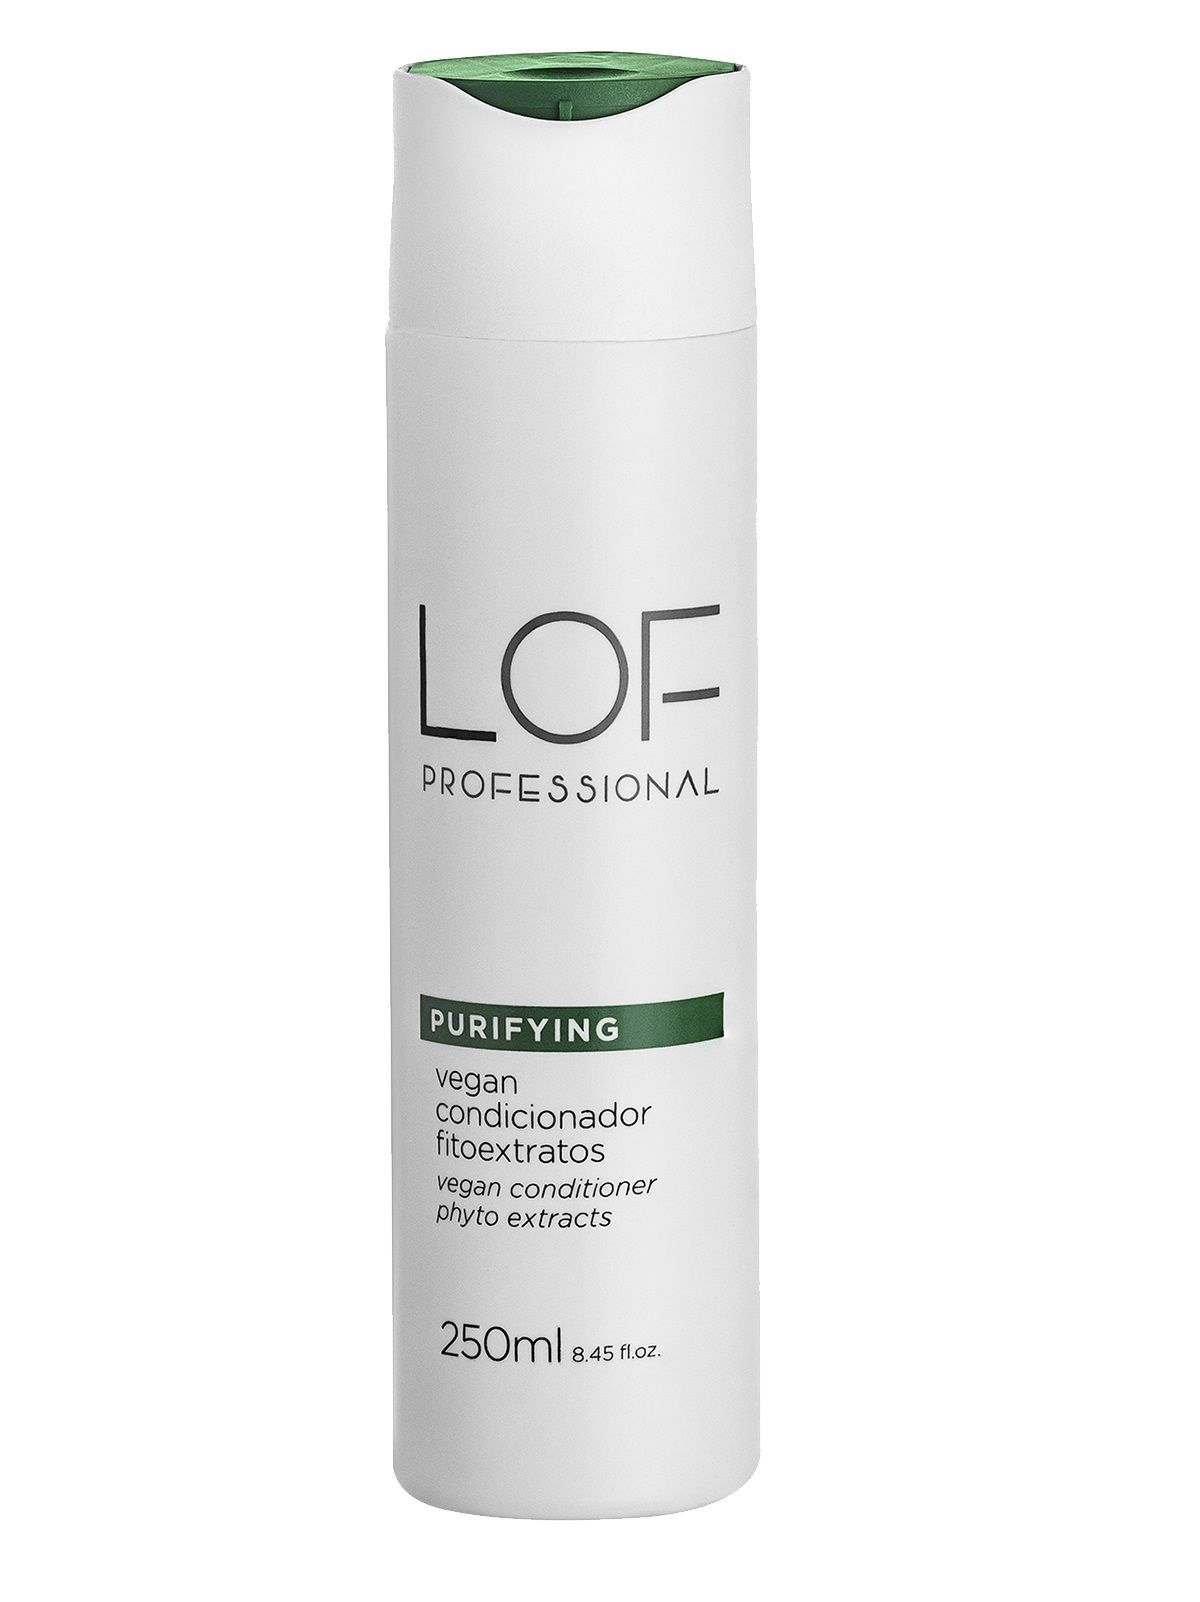 LOF Professional Purifying Vegan Condicionador